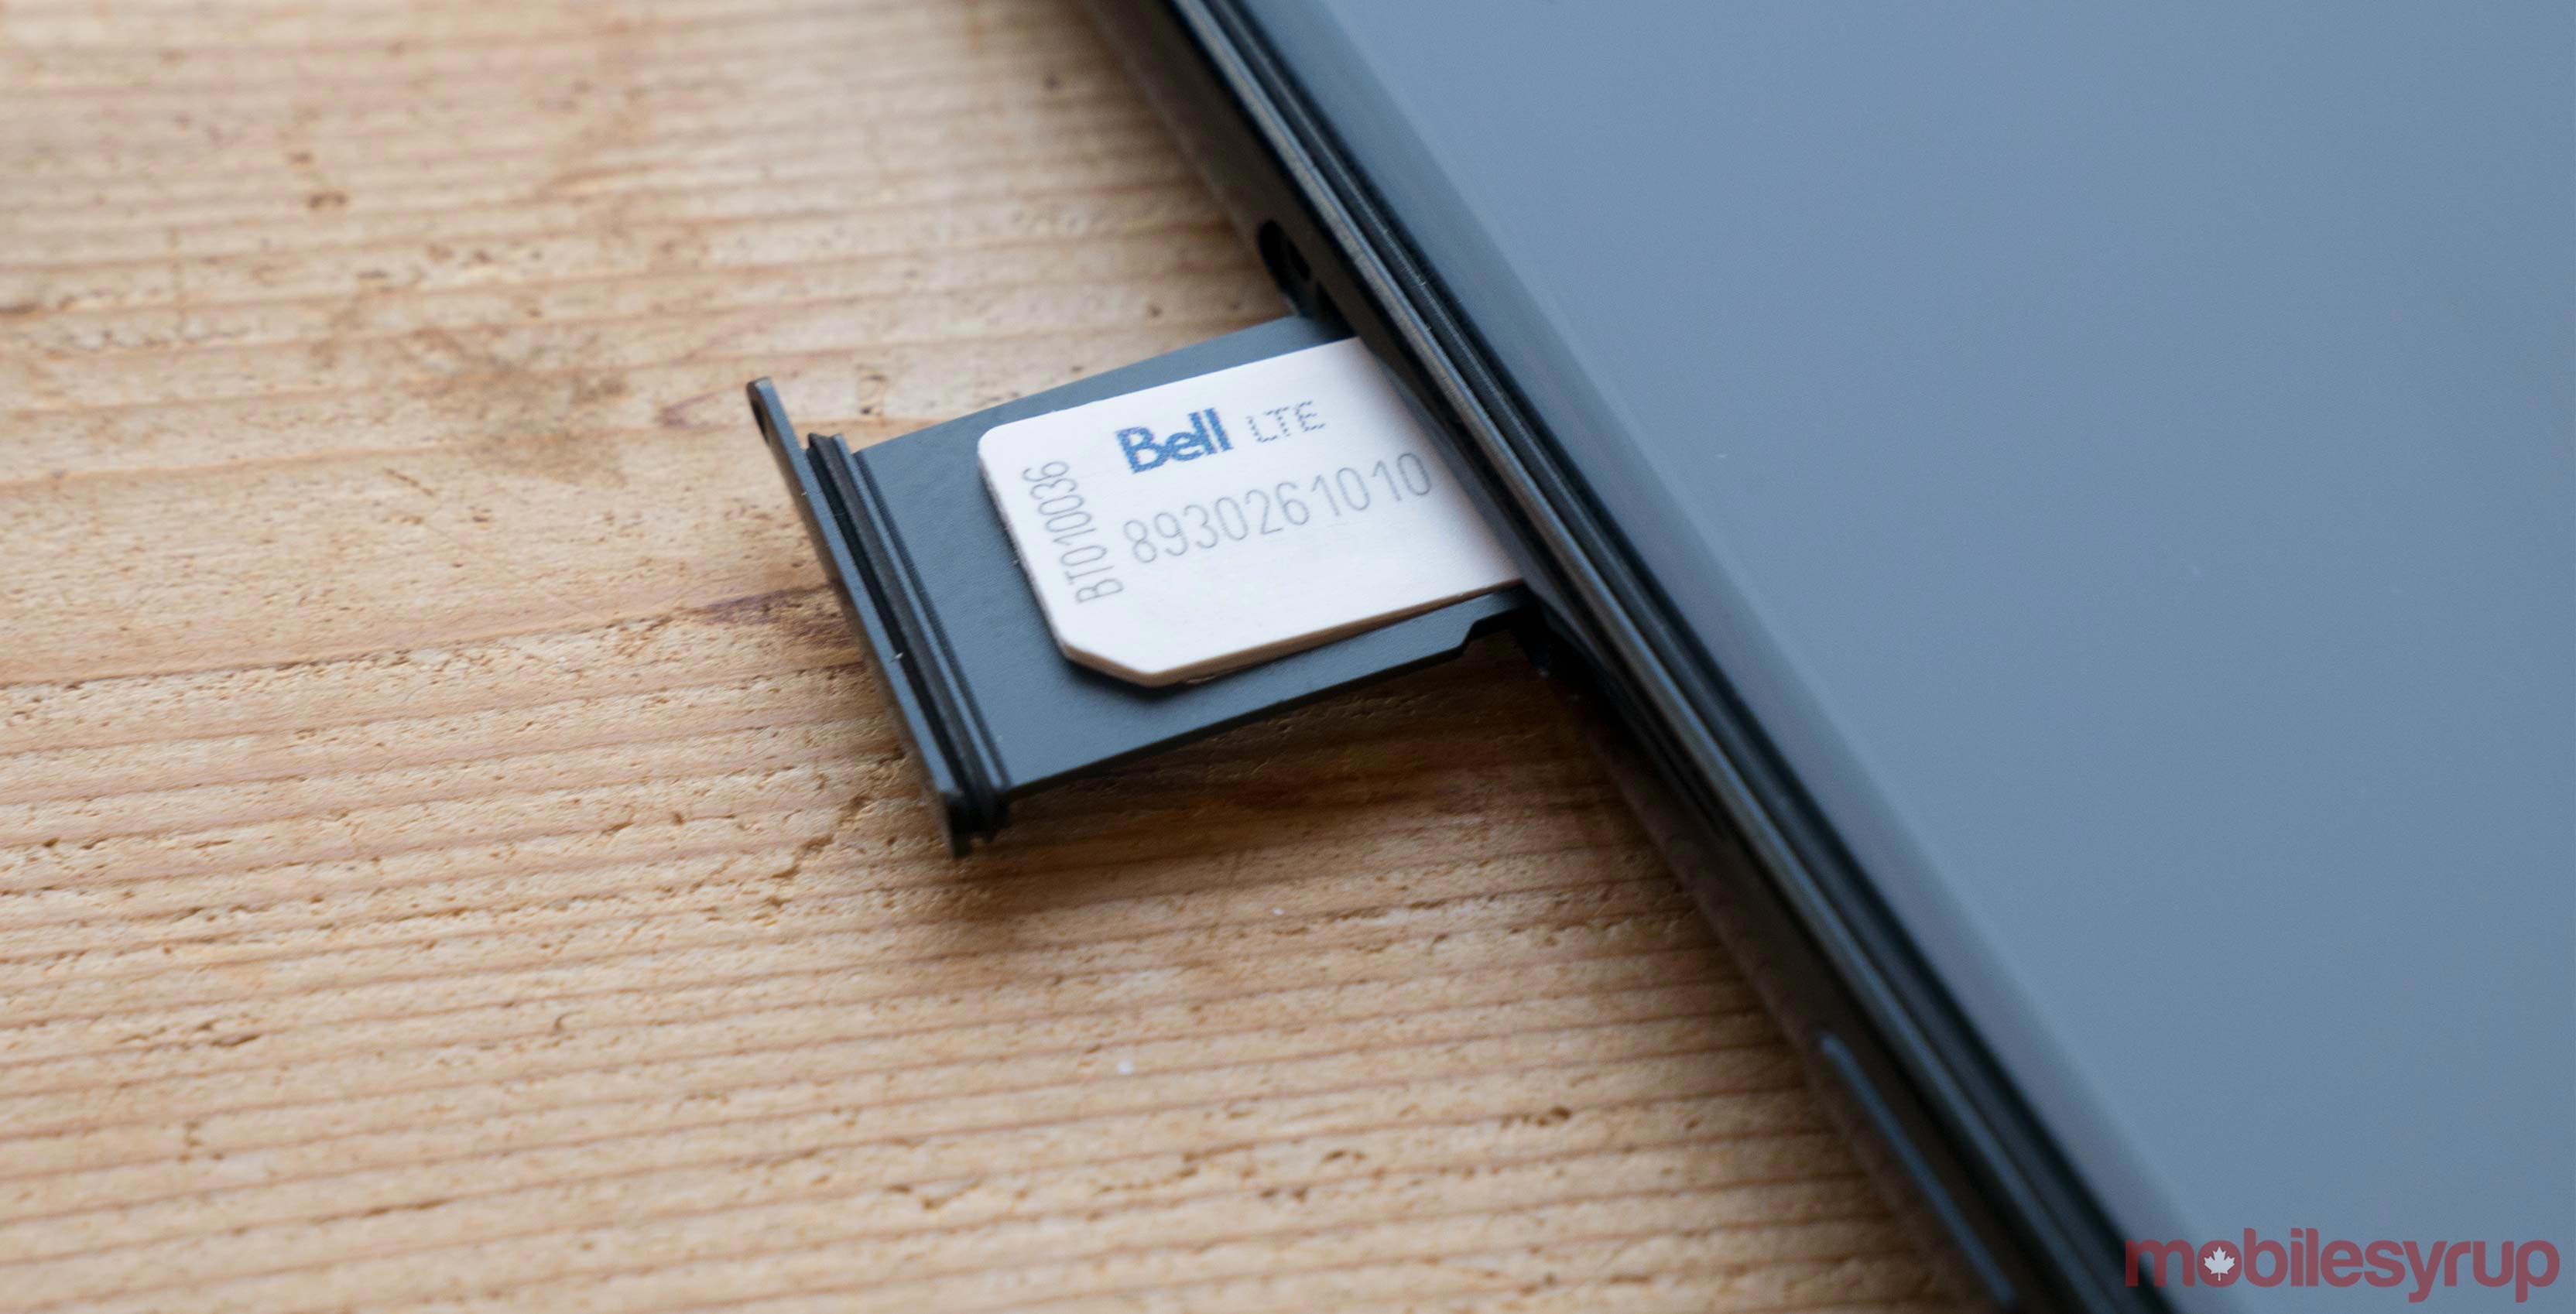 Bell now offers Quad Band LTE in almost 40 markets across Canada